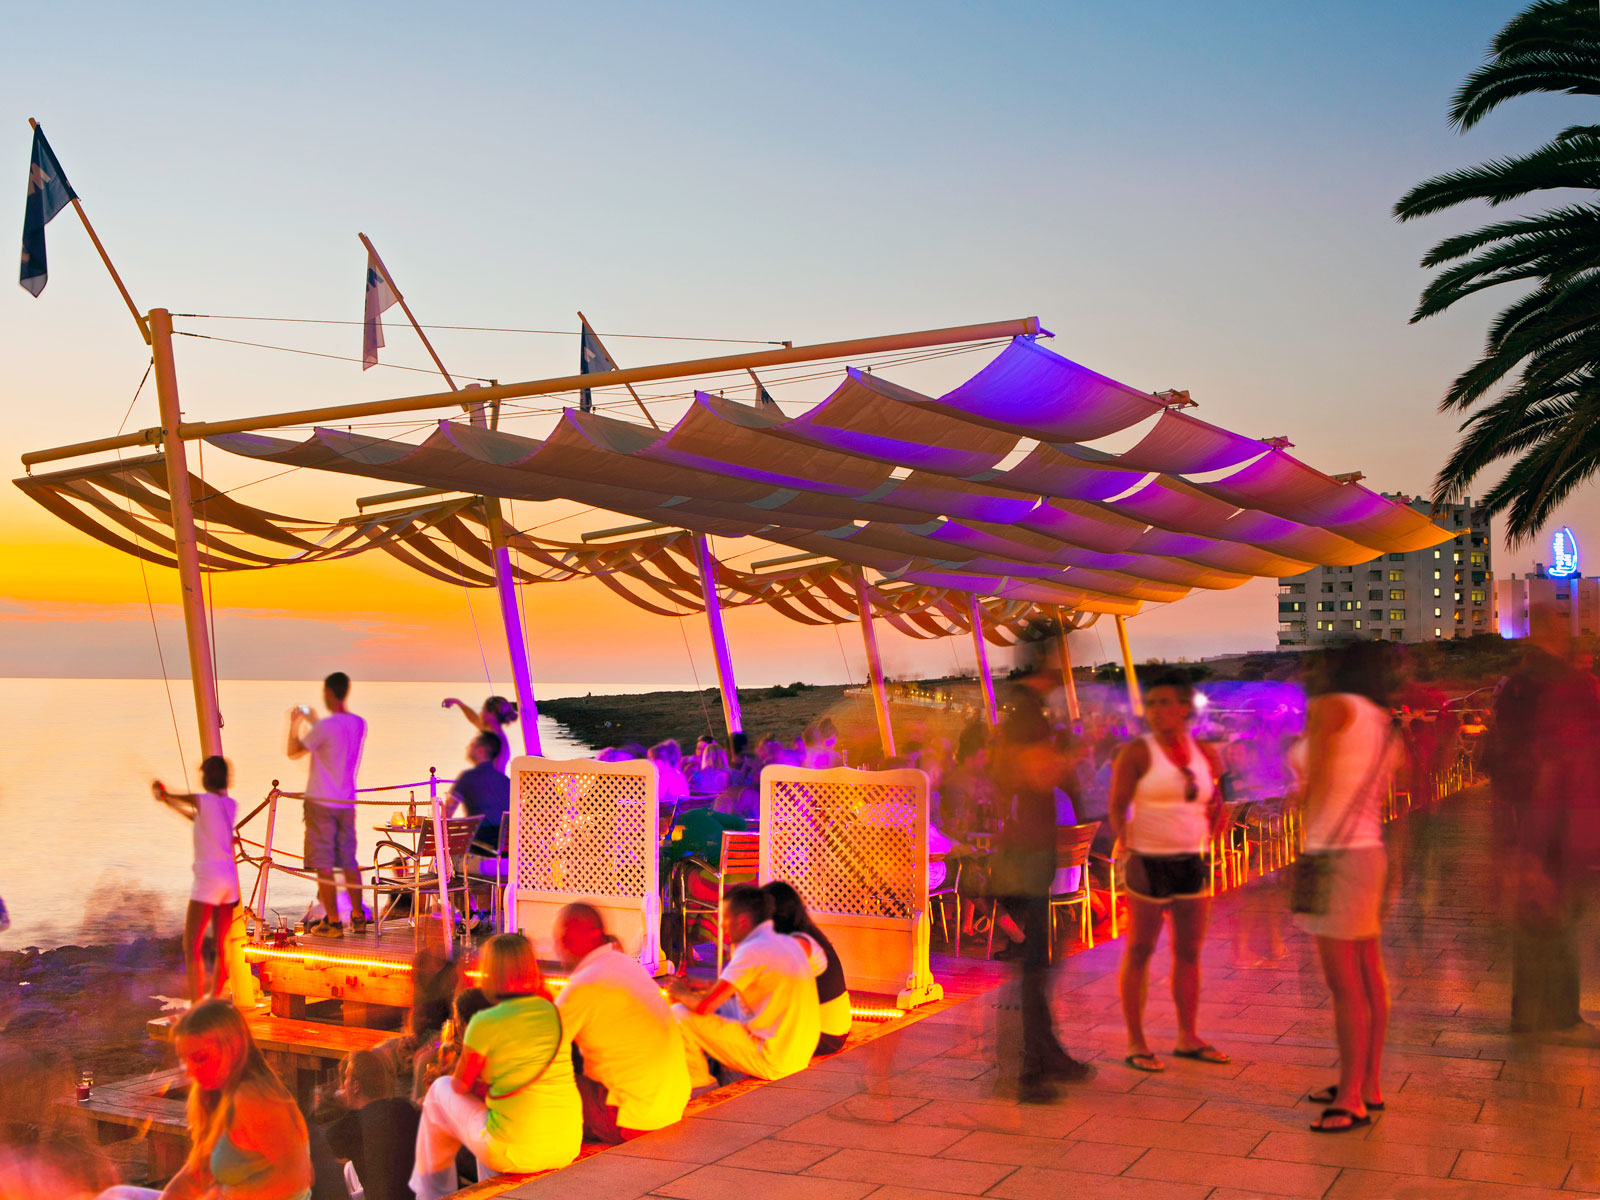 ibiza-drink-regulations-FT-BLOG0120.jpg